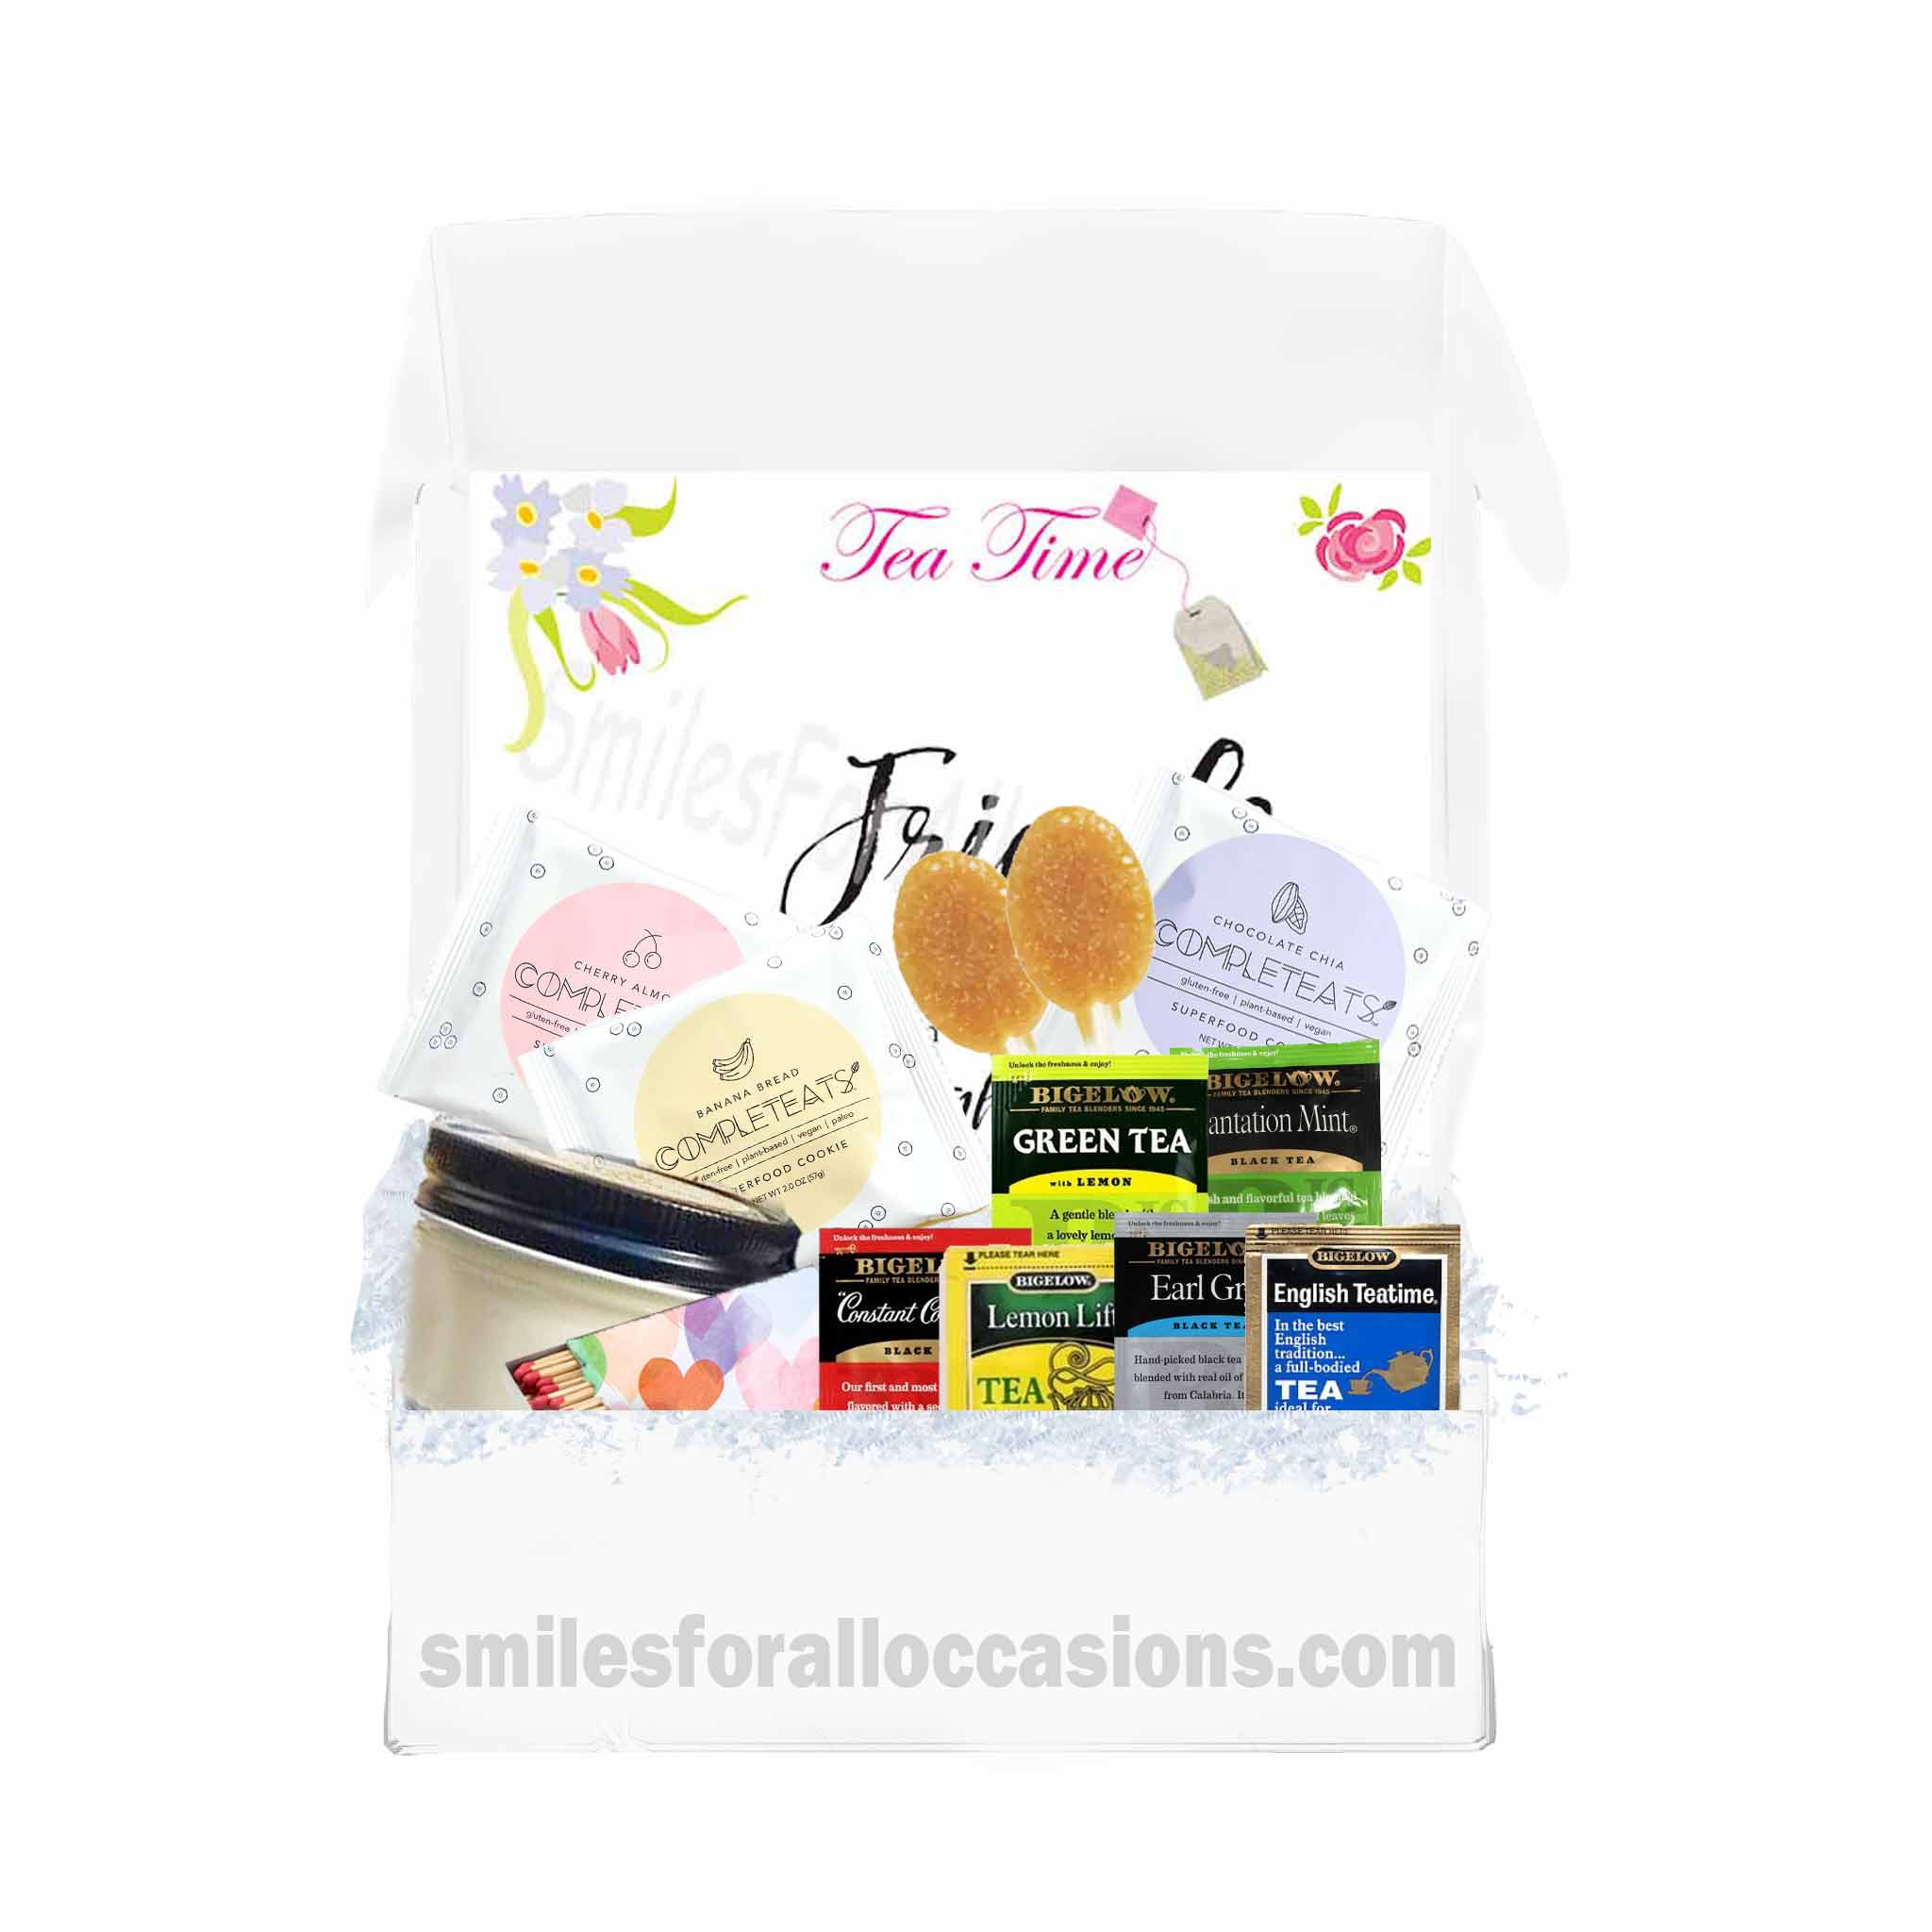 Tea Time Box / Care package Small